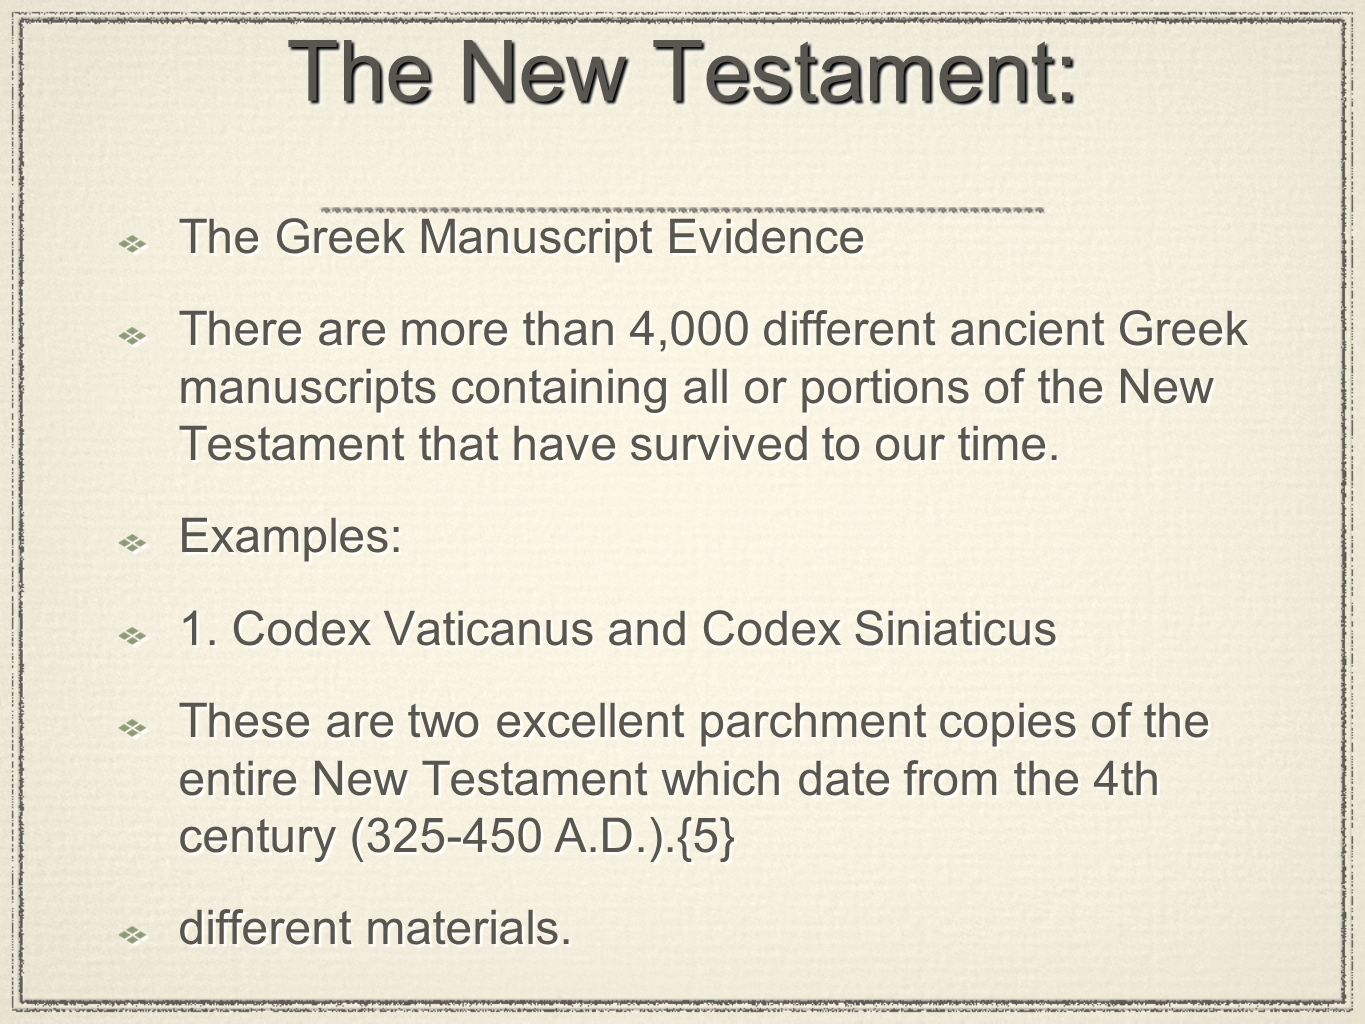 The New Testament: The Greek Manuscript Evidence